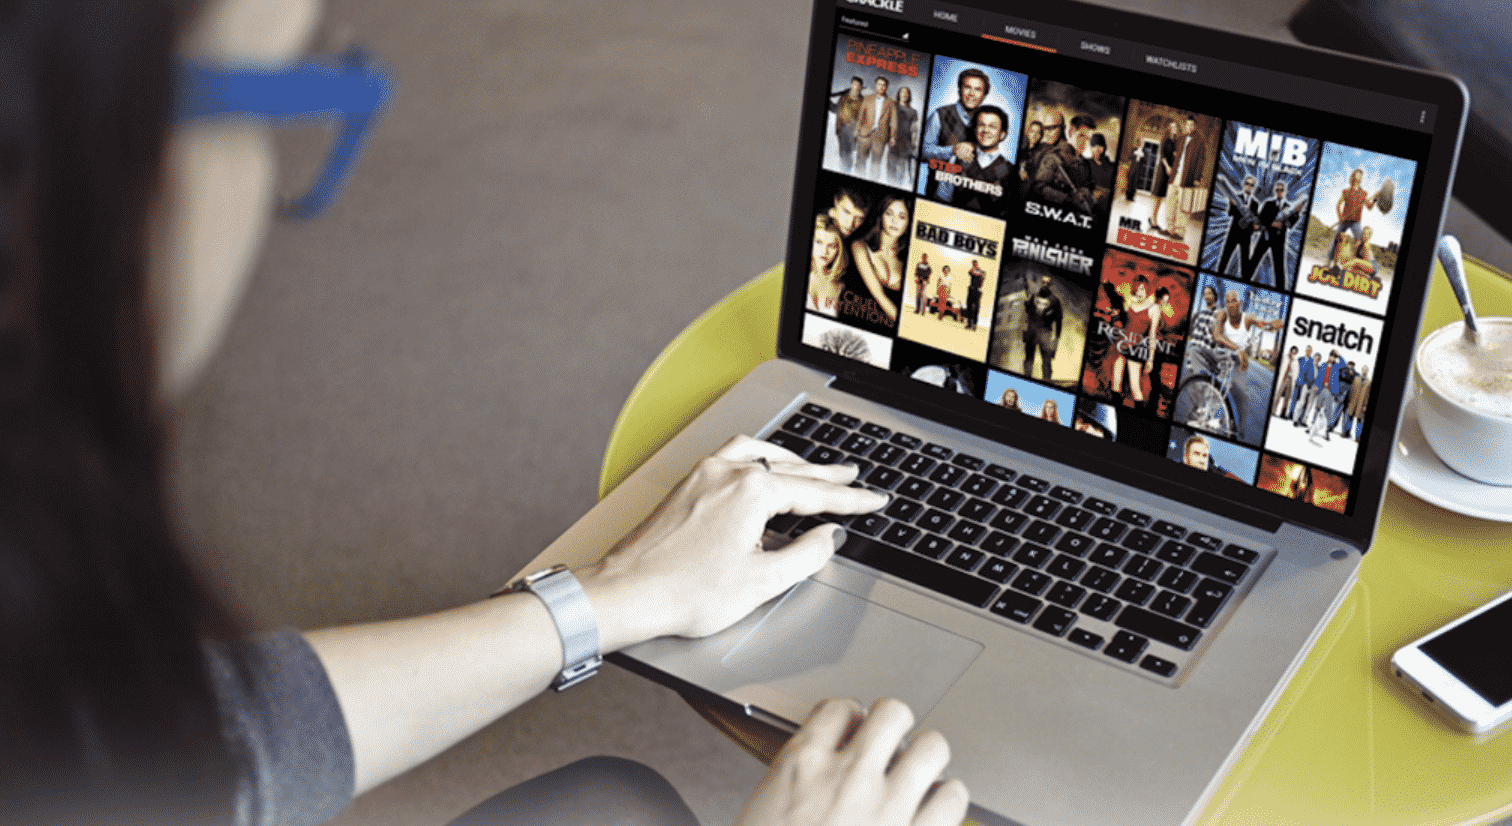 Where would I watch free movies expect Putlocker; Best websites without signing up?